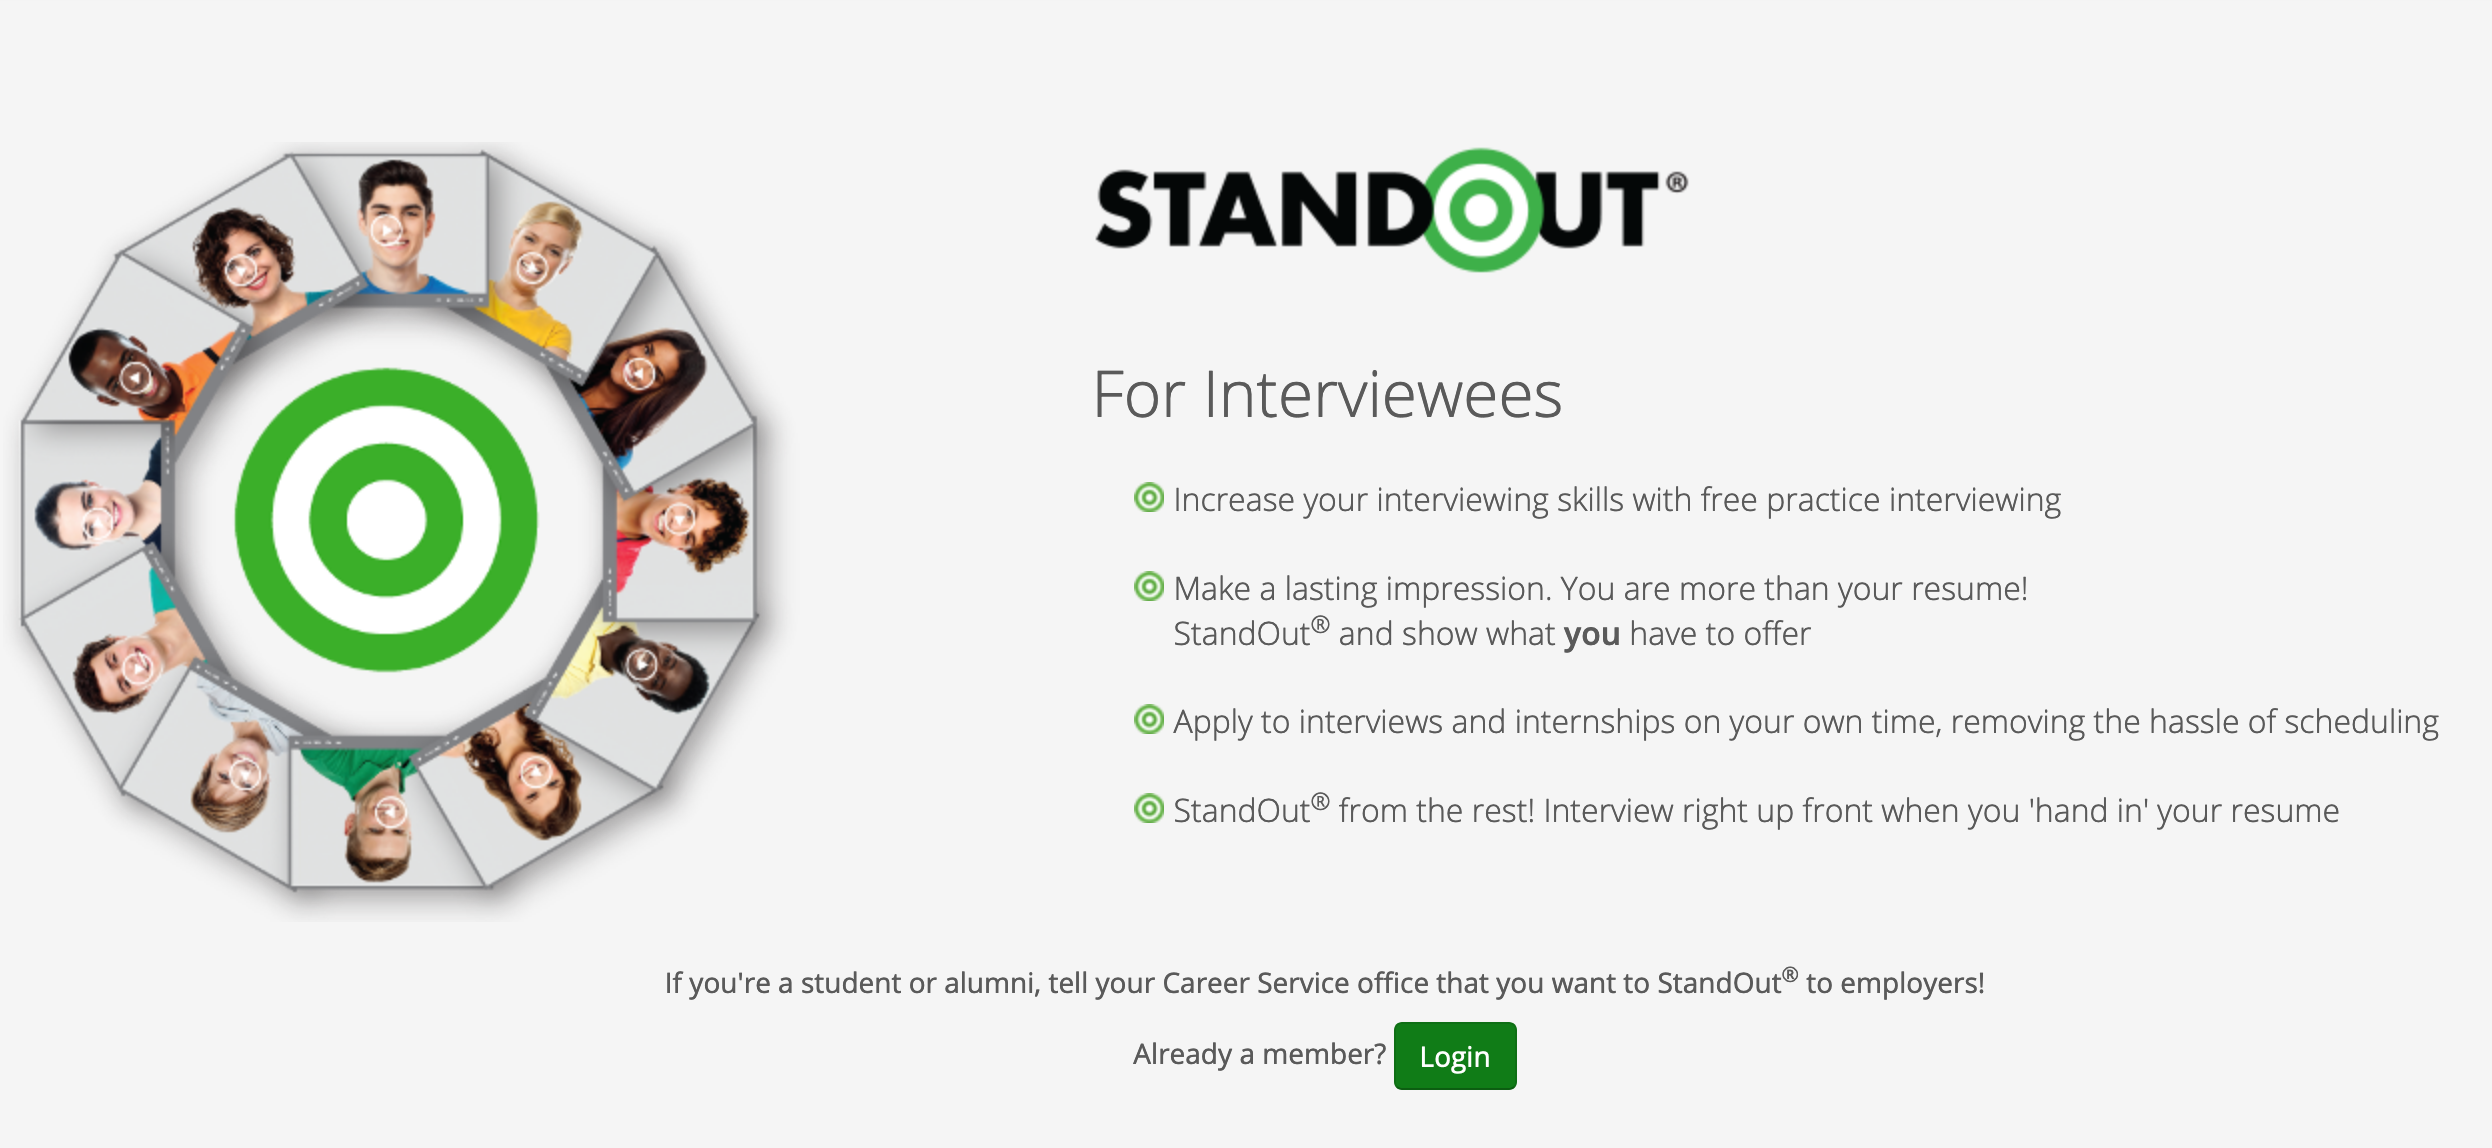 image of standout, the mock interview tool